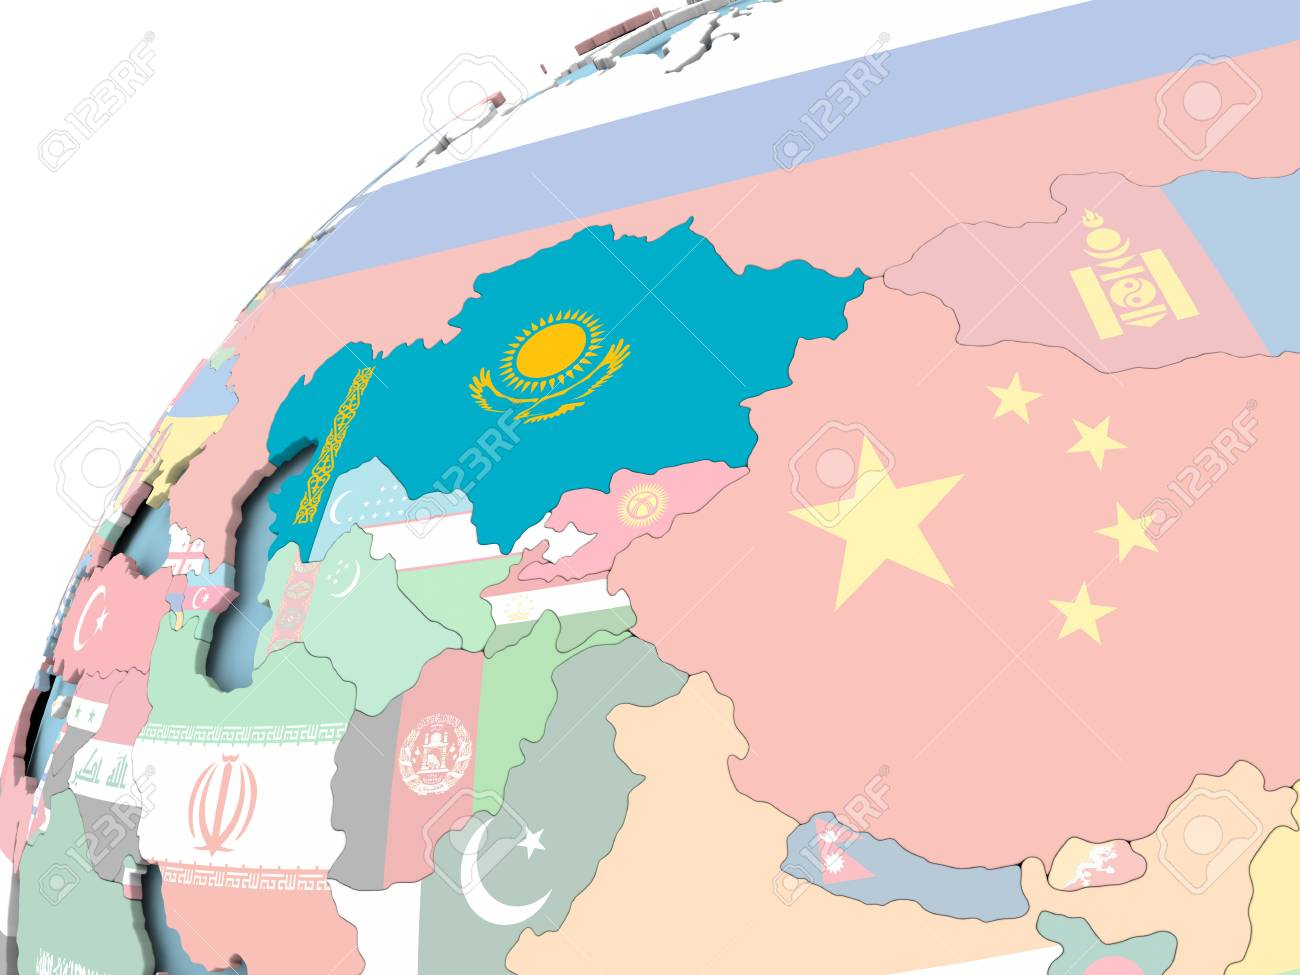 Kazakhstan Political Map.Map Of Kazakhstan On Political Globe With Embedded Flag 3d